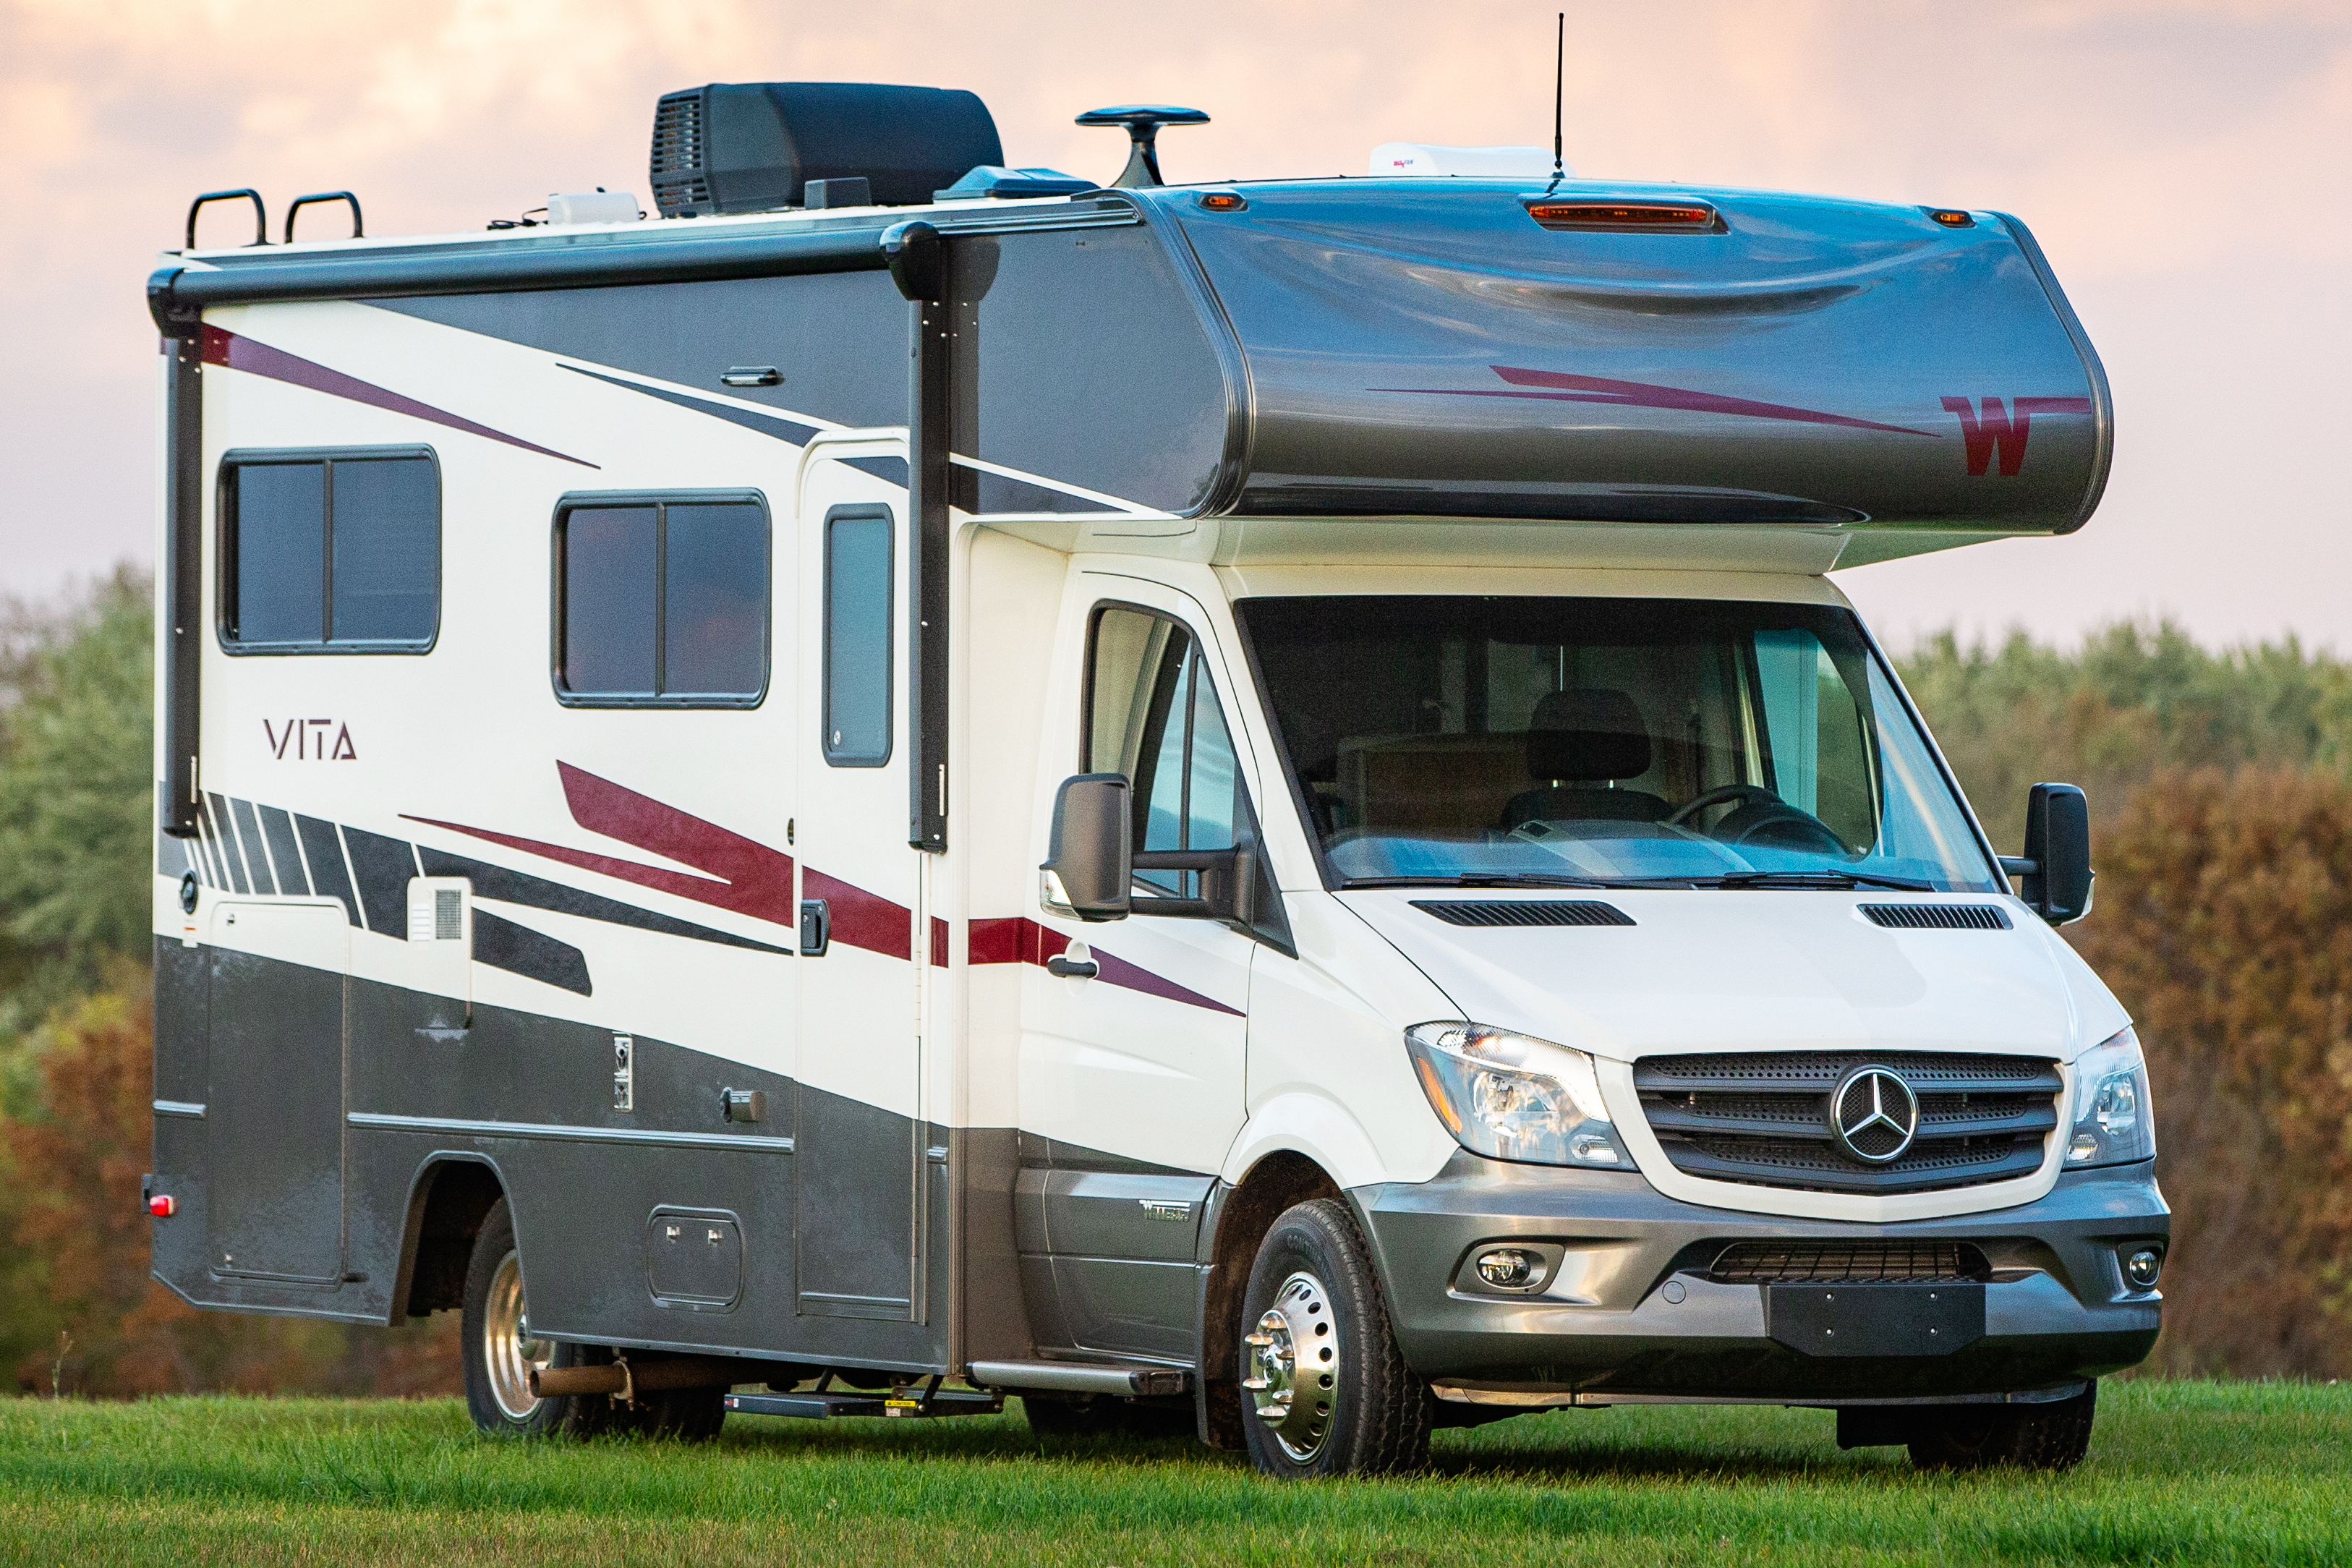 Introducing the All New   Winnebago Vita  Mercedes Benz fuel efficiency with Winnebago's legendary quality    $127,483 MSRP